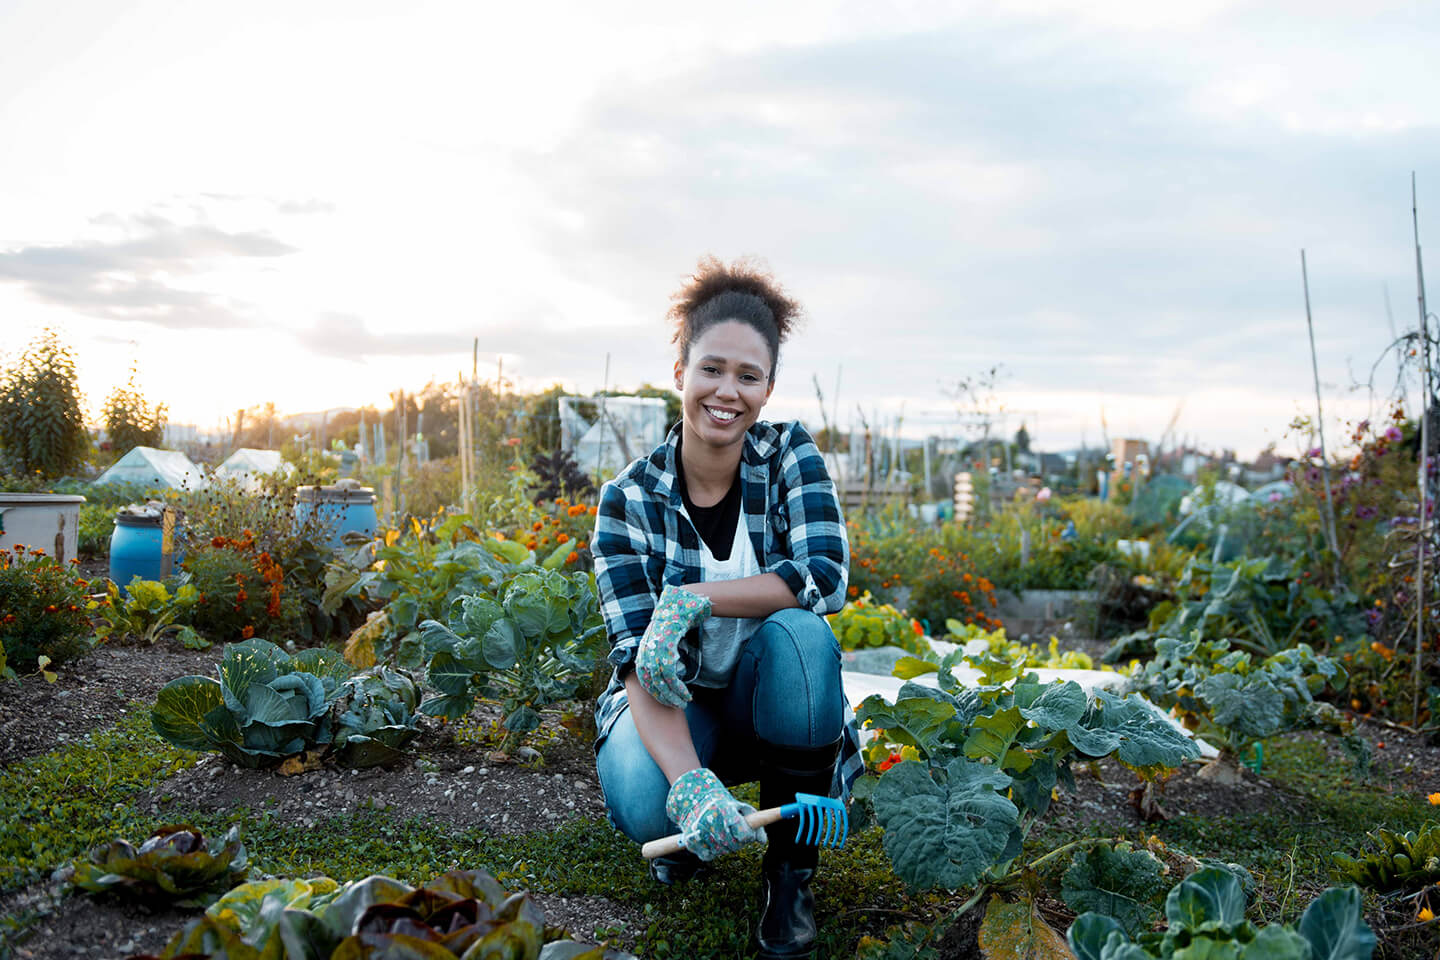 A young woman smiling for the camera in her gardening element.